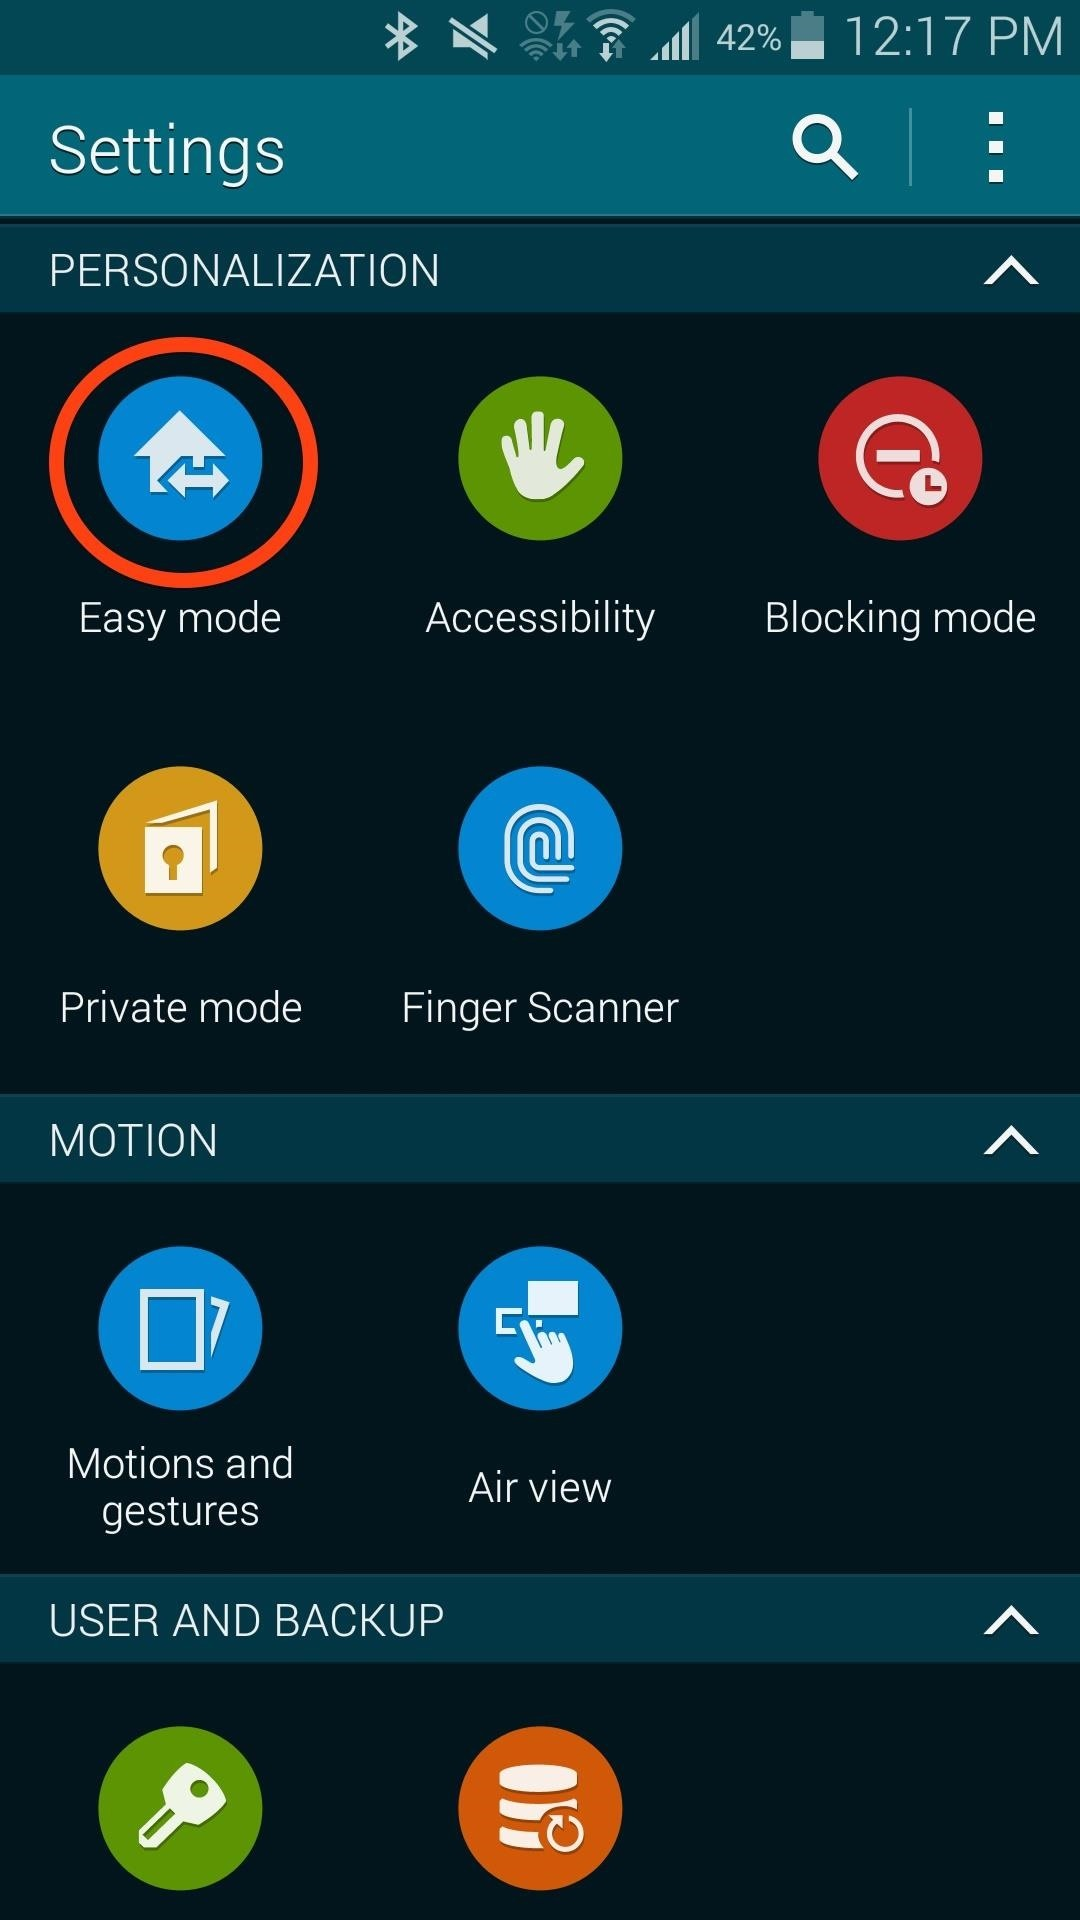 How to Set Up Your Grandma's Samsung Galaxy S5 for Easier Use (& Less Questions for You)